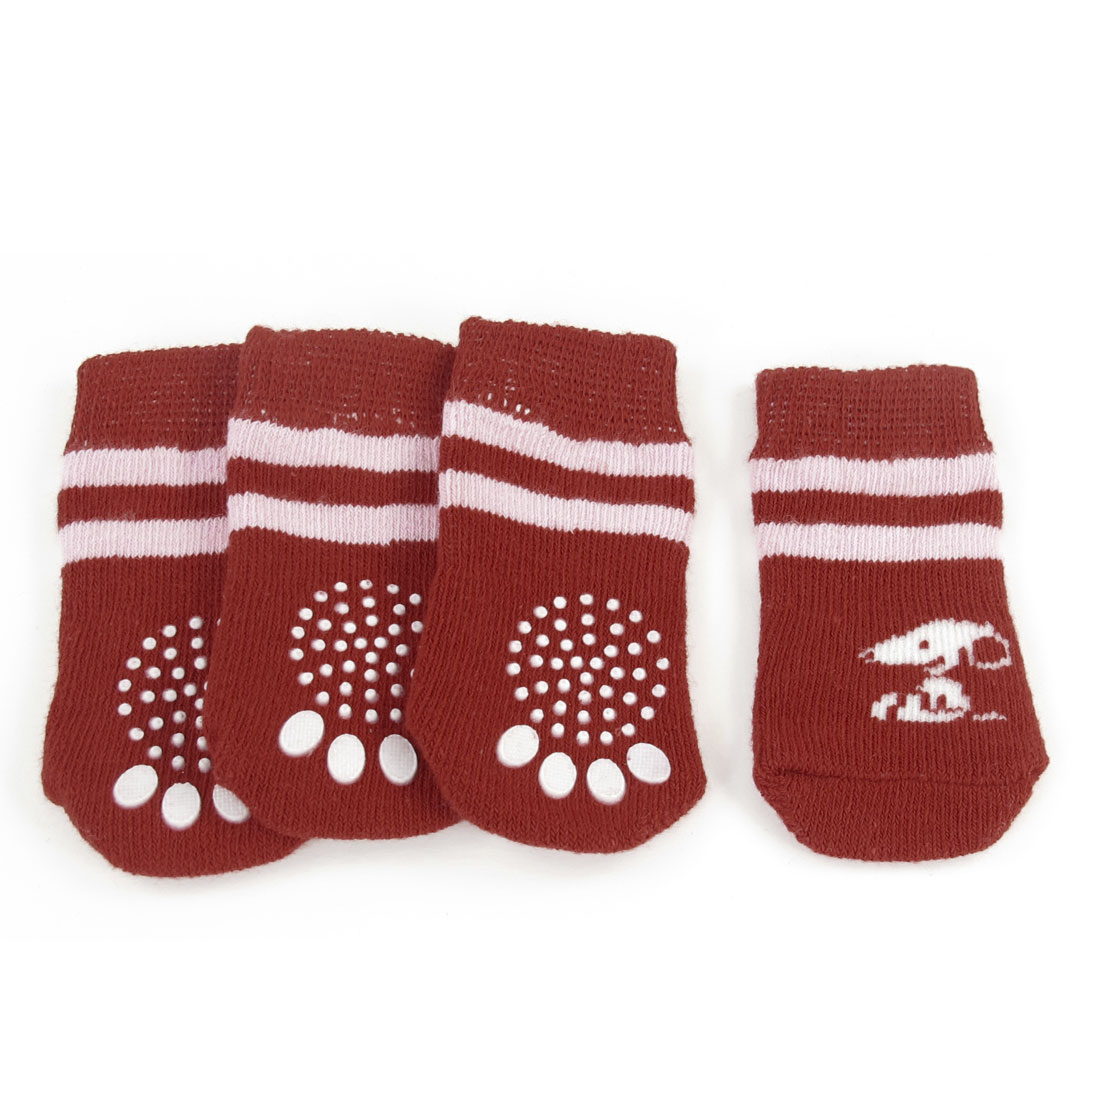 4 Pcs Red Pink Paw Print Non Slip Bottom Warm Pet Dog Puppy Socks Size M